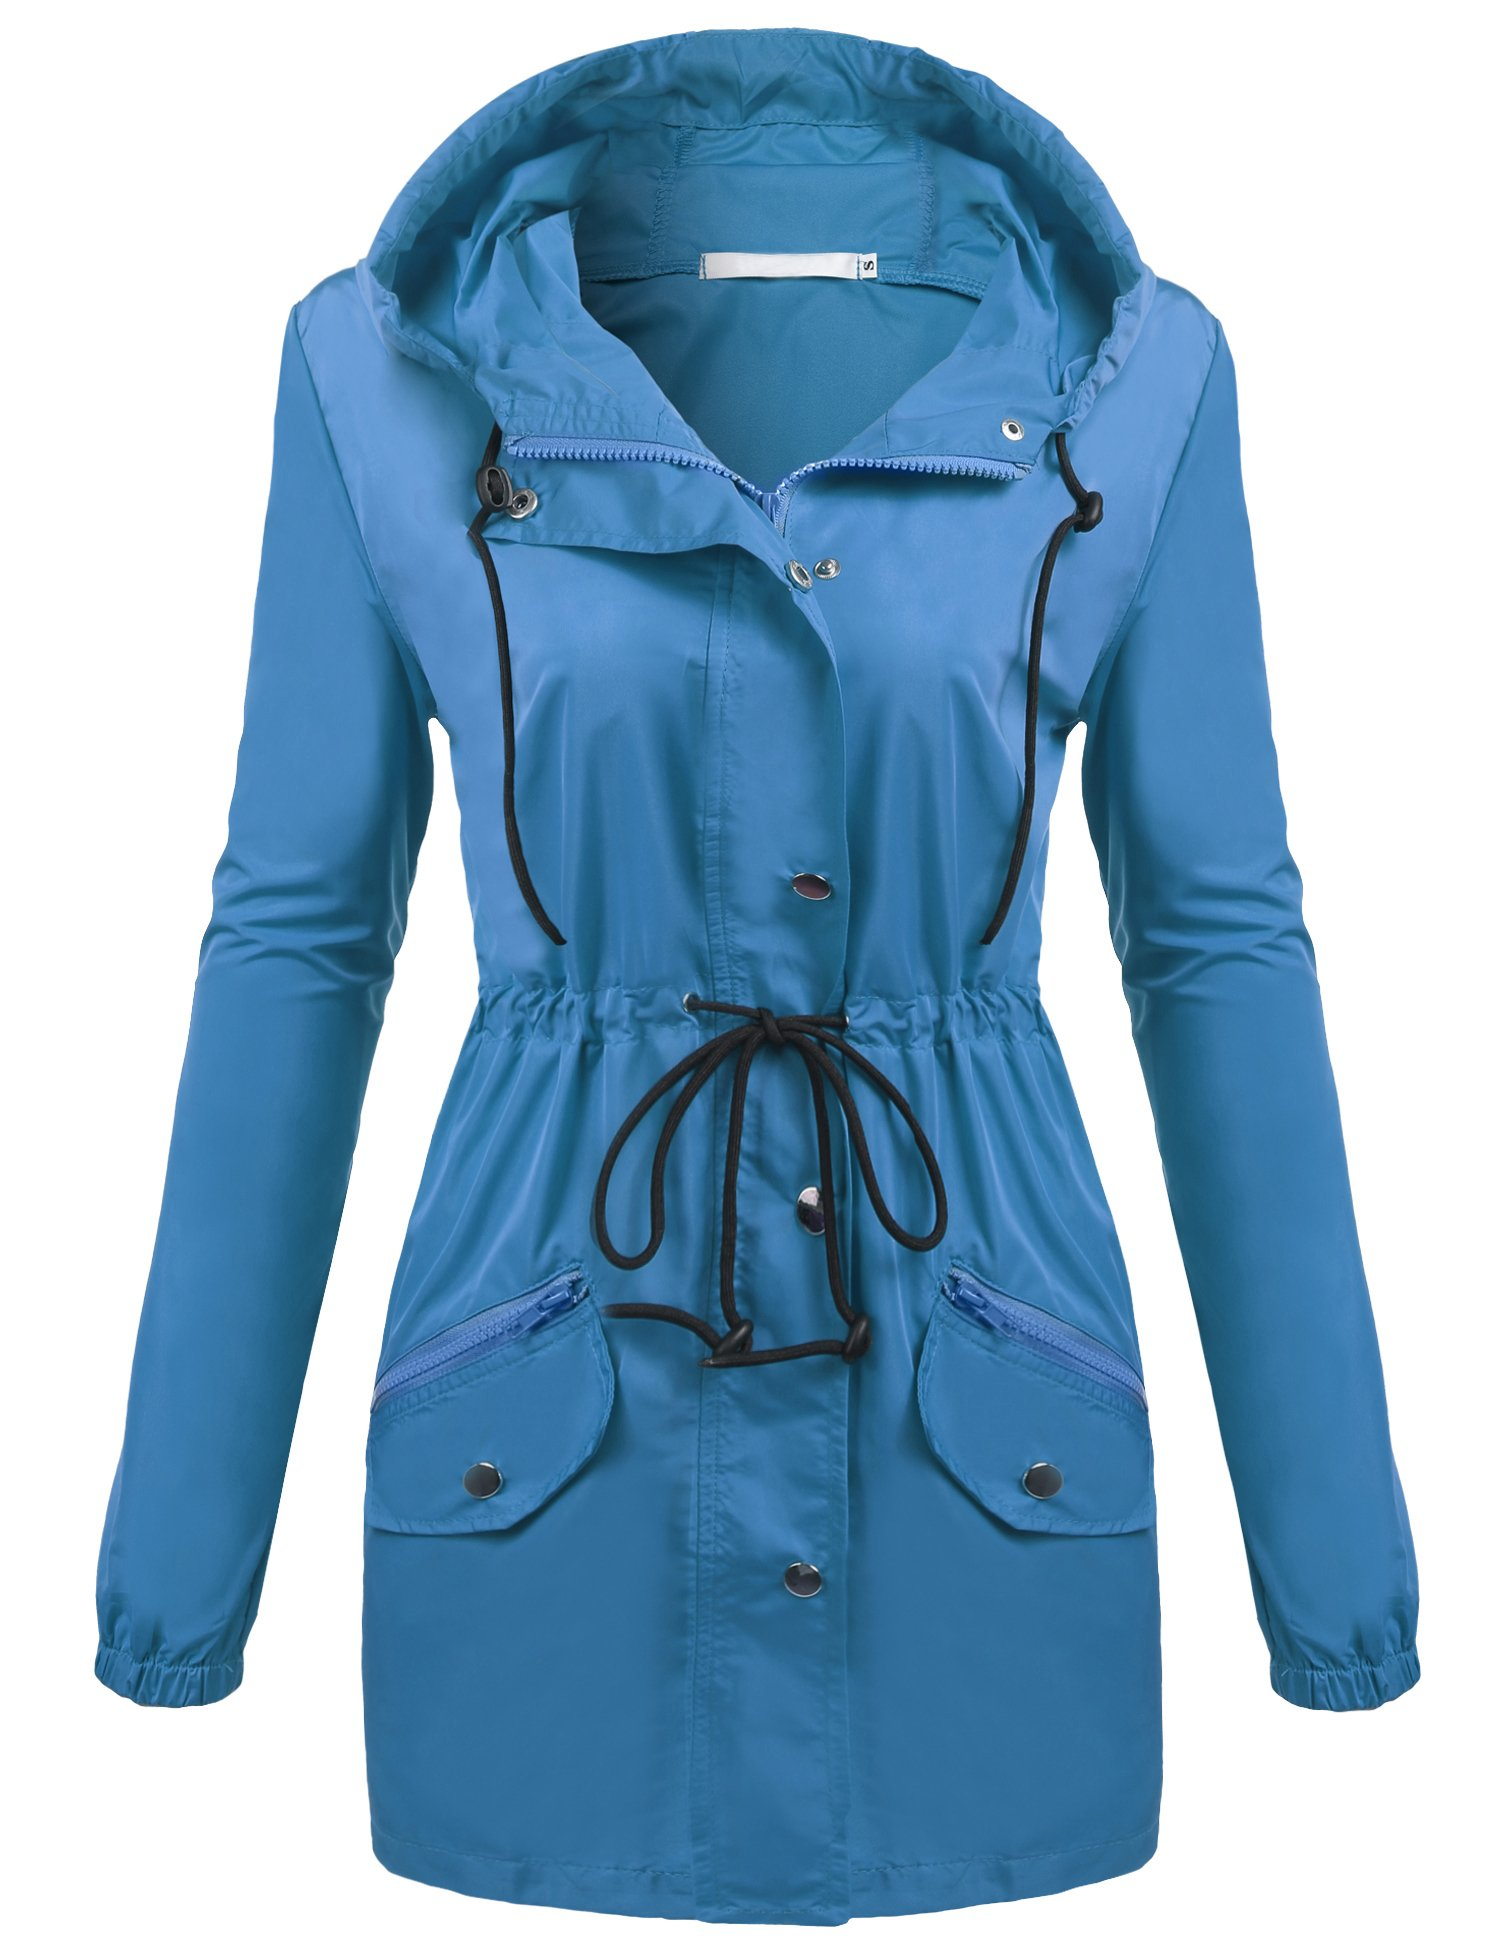 UNibelle Rain Jacket Women Lightweight Hooded Waterproof Raincoat Sky Blue